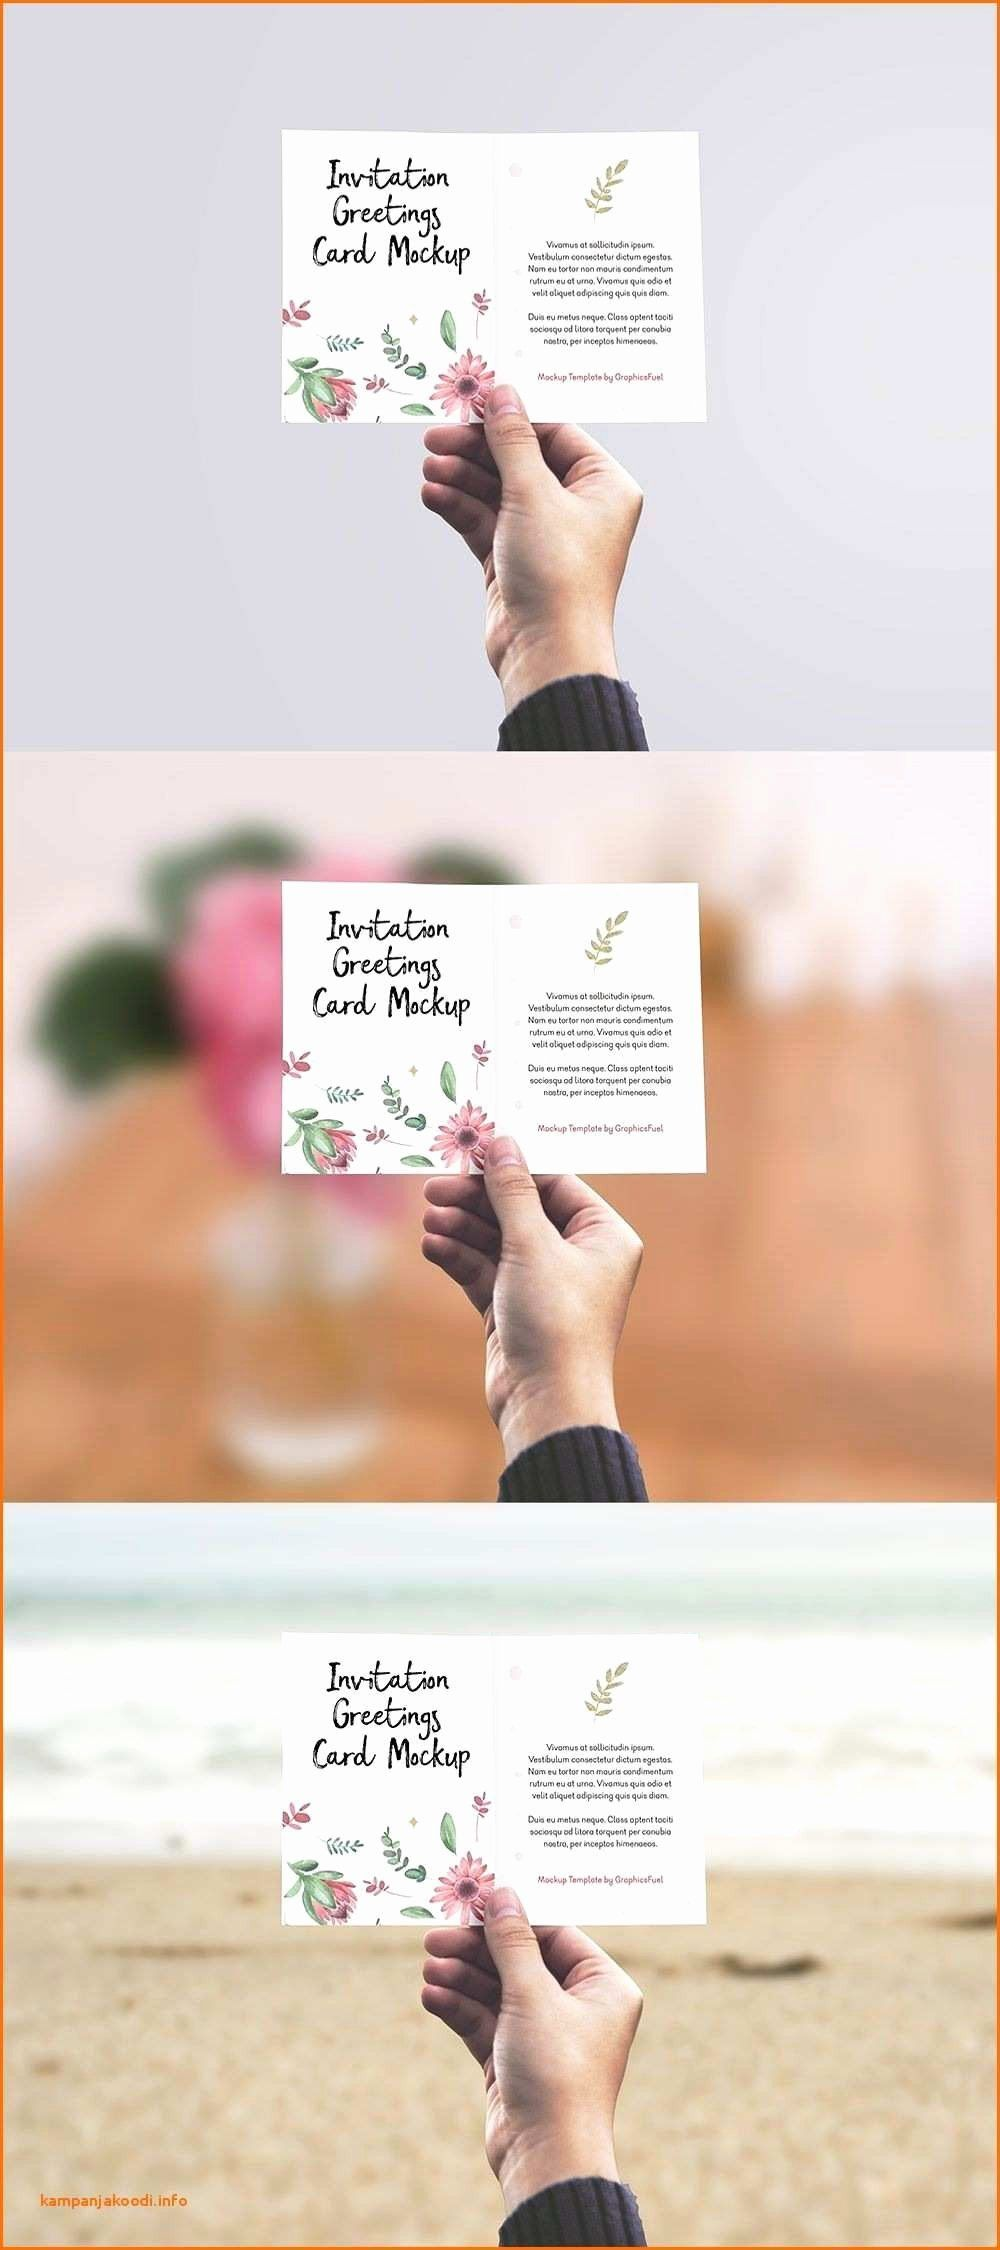 Farewell Card Printable Best Of Unique Engagement Invitation Card Template In 2020 Themed Wedding Invitations Wedding Invitation Kits Party Invite Template